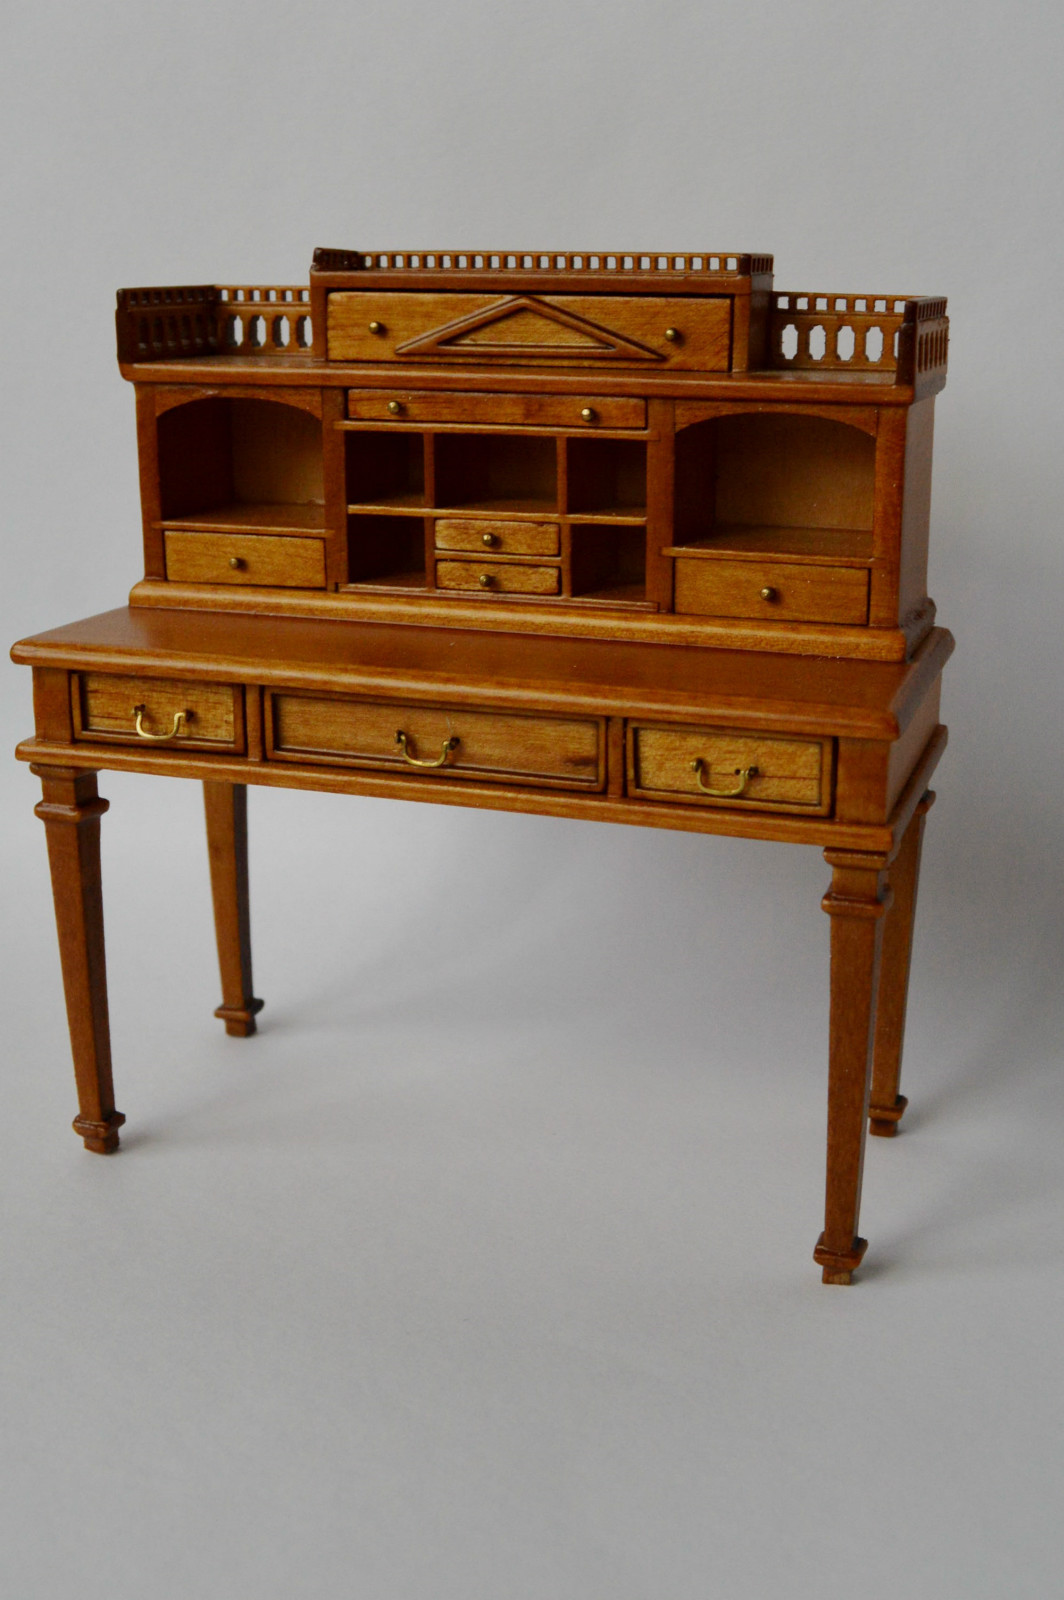 unique writing desk Antique writing desk hutch & marketplace (500+) only (37) in-store: set your location shop in refine your search category (500+) home (19) office supplies.